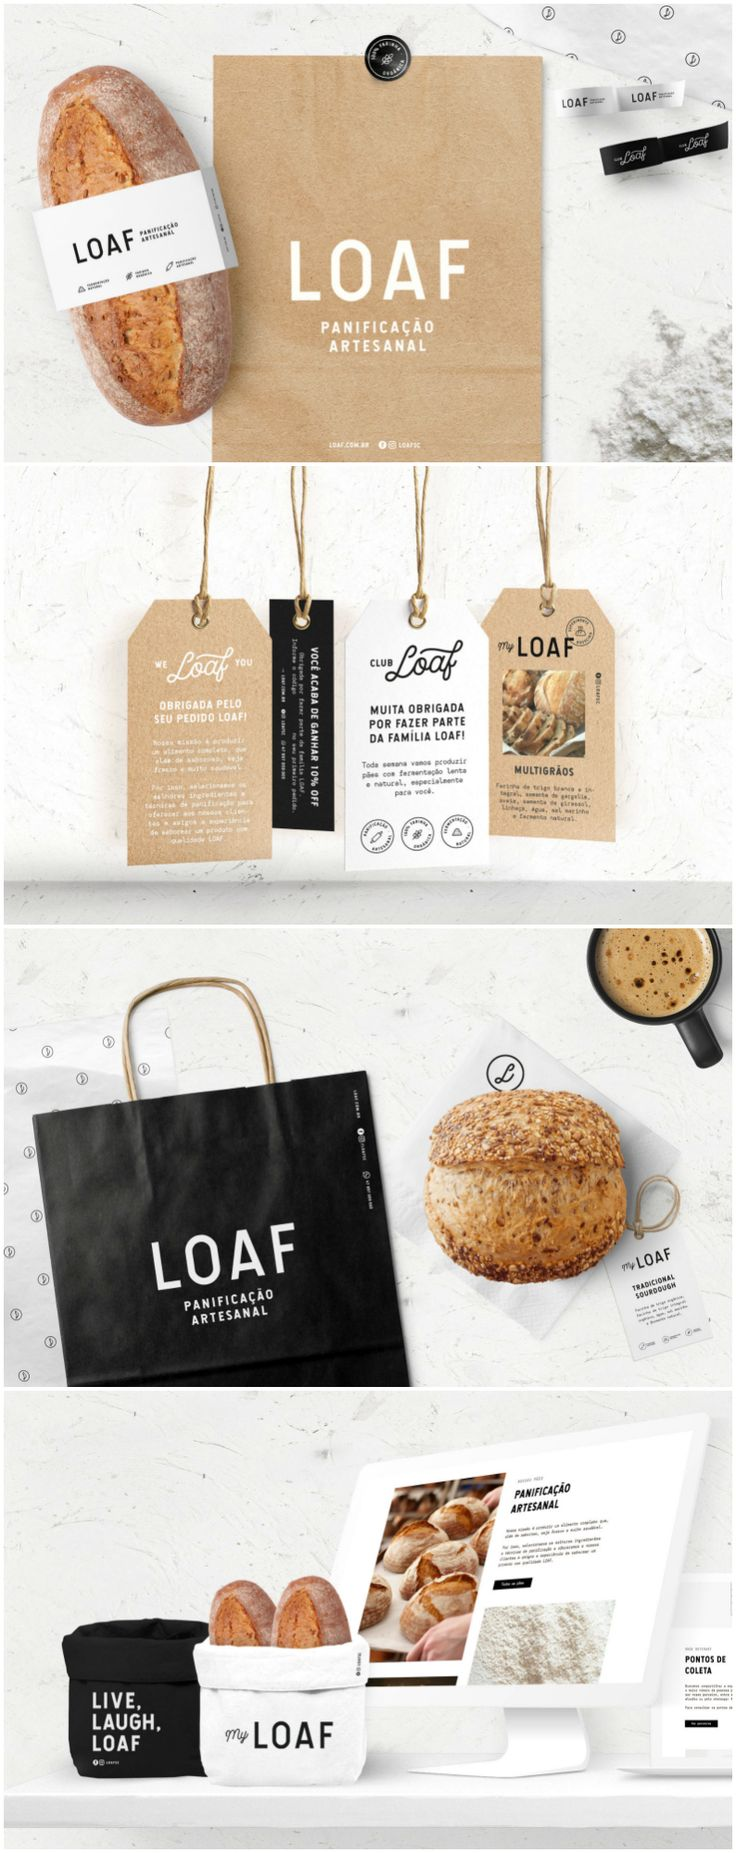 New Brand and Packaging for an Artisan Bakery in Brazil  Design Agency: Bea Janoni Brand / Project Name: Loaf Location: Brazil Category: #bakery   World Brand & Packaging Design Society